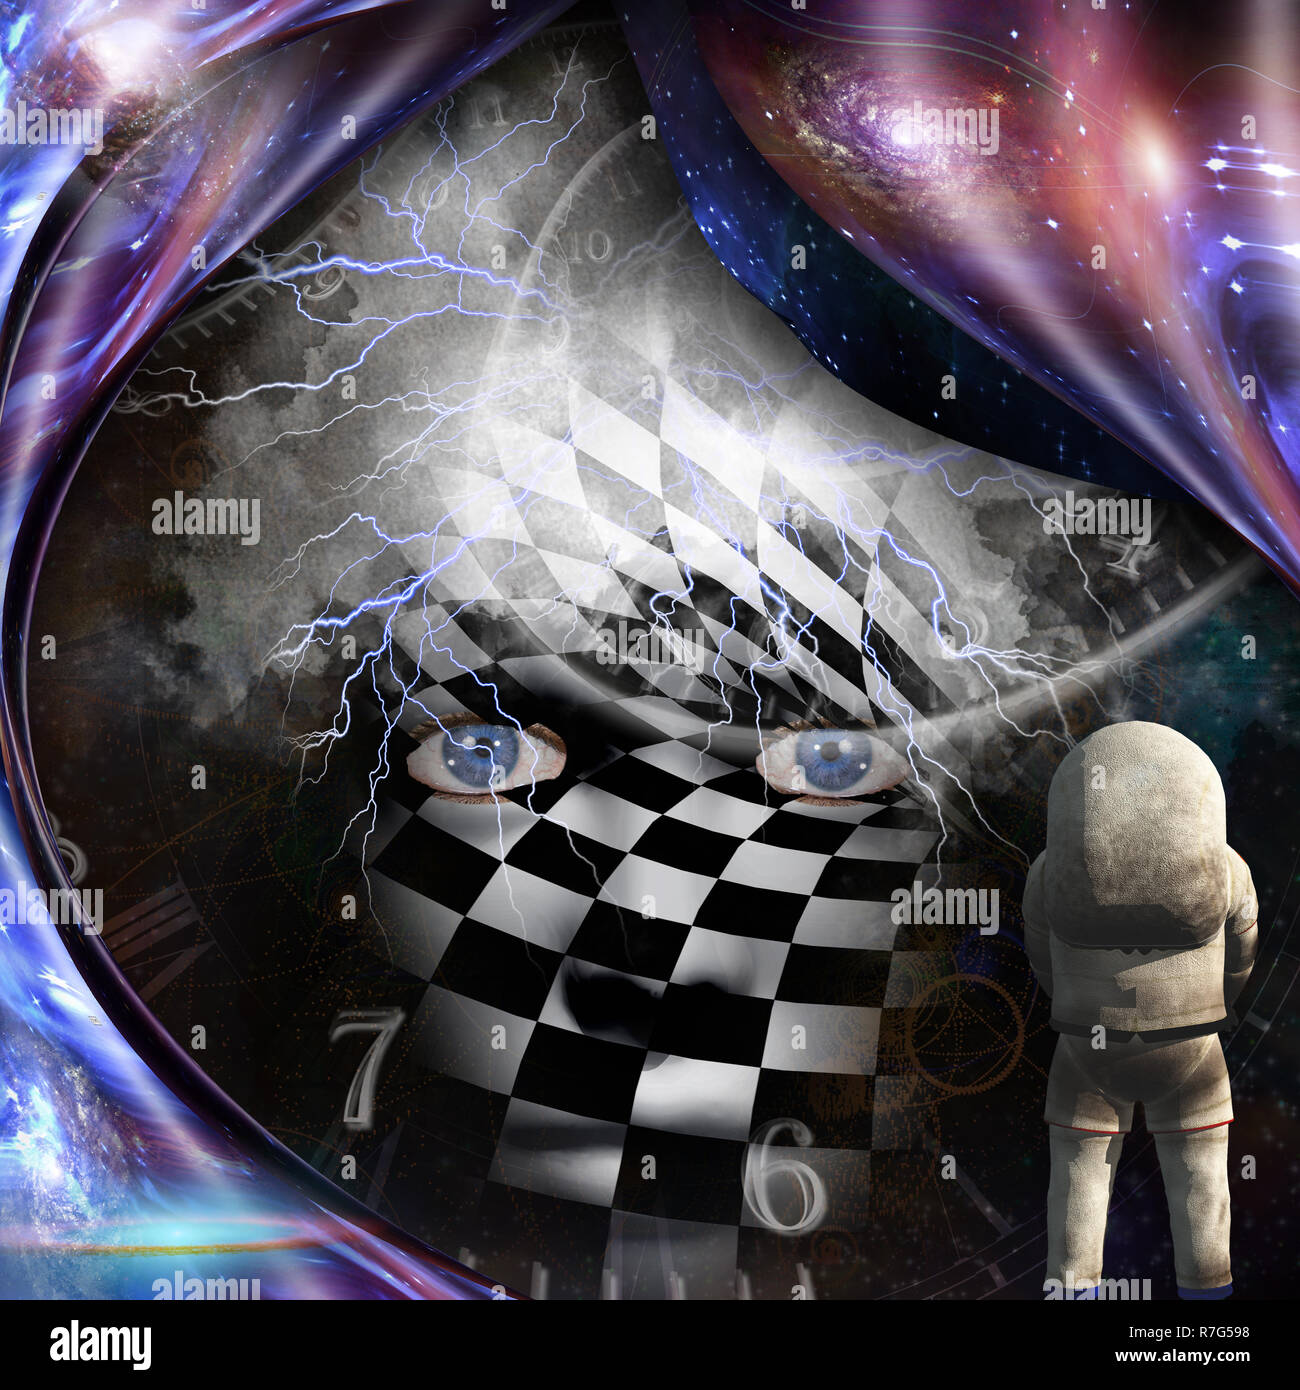 Surrealism. Spirals of time and warped space. Astronaut. Checkered woman's face with lightnings in deep space. - Stock Image